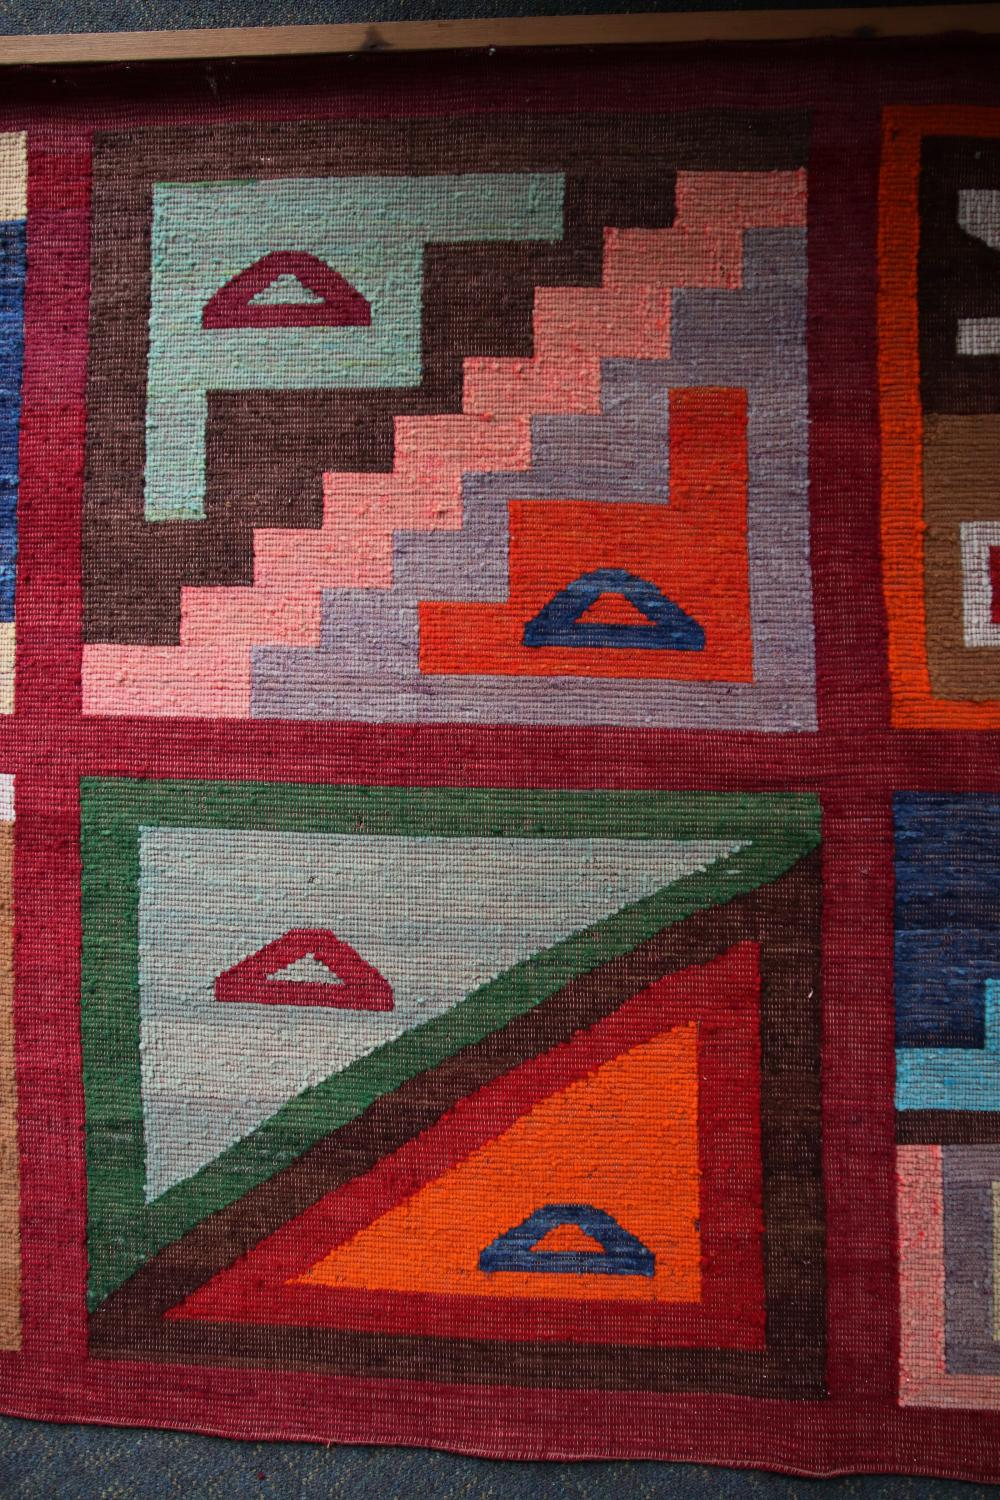 WALL HANGINGS, WOOL, TRADITIONAL SOUTH AMERICAN KILIM WEAVE WITH GEOMETRIC MOTIFS , MEASURES 140 X 210 CM